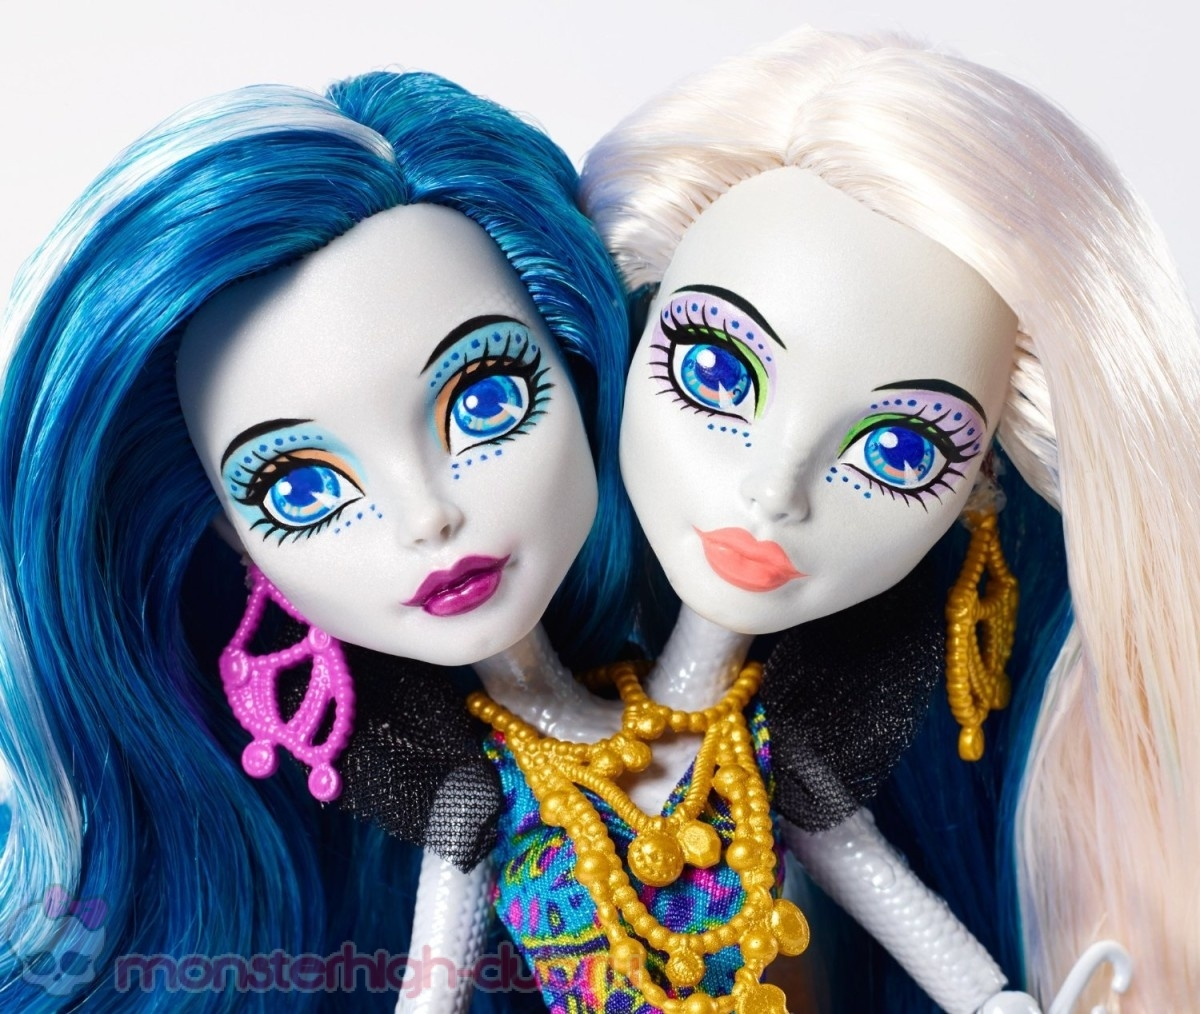 monster_high_great_scarrier_reef_peri_and_oearl_serpentine_2_head (8)